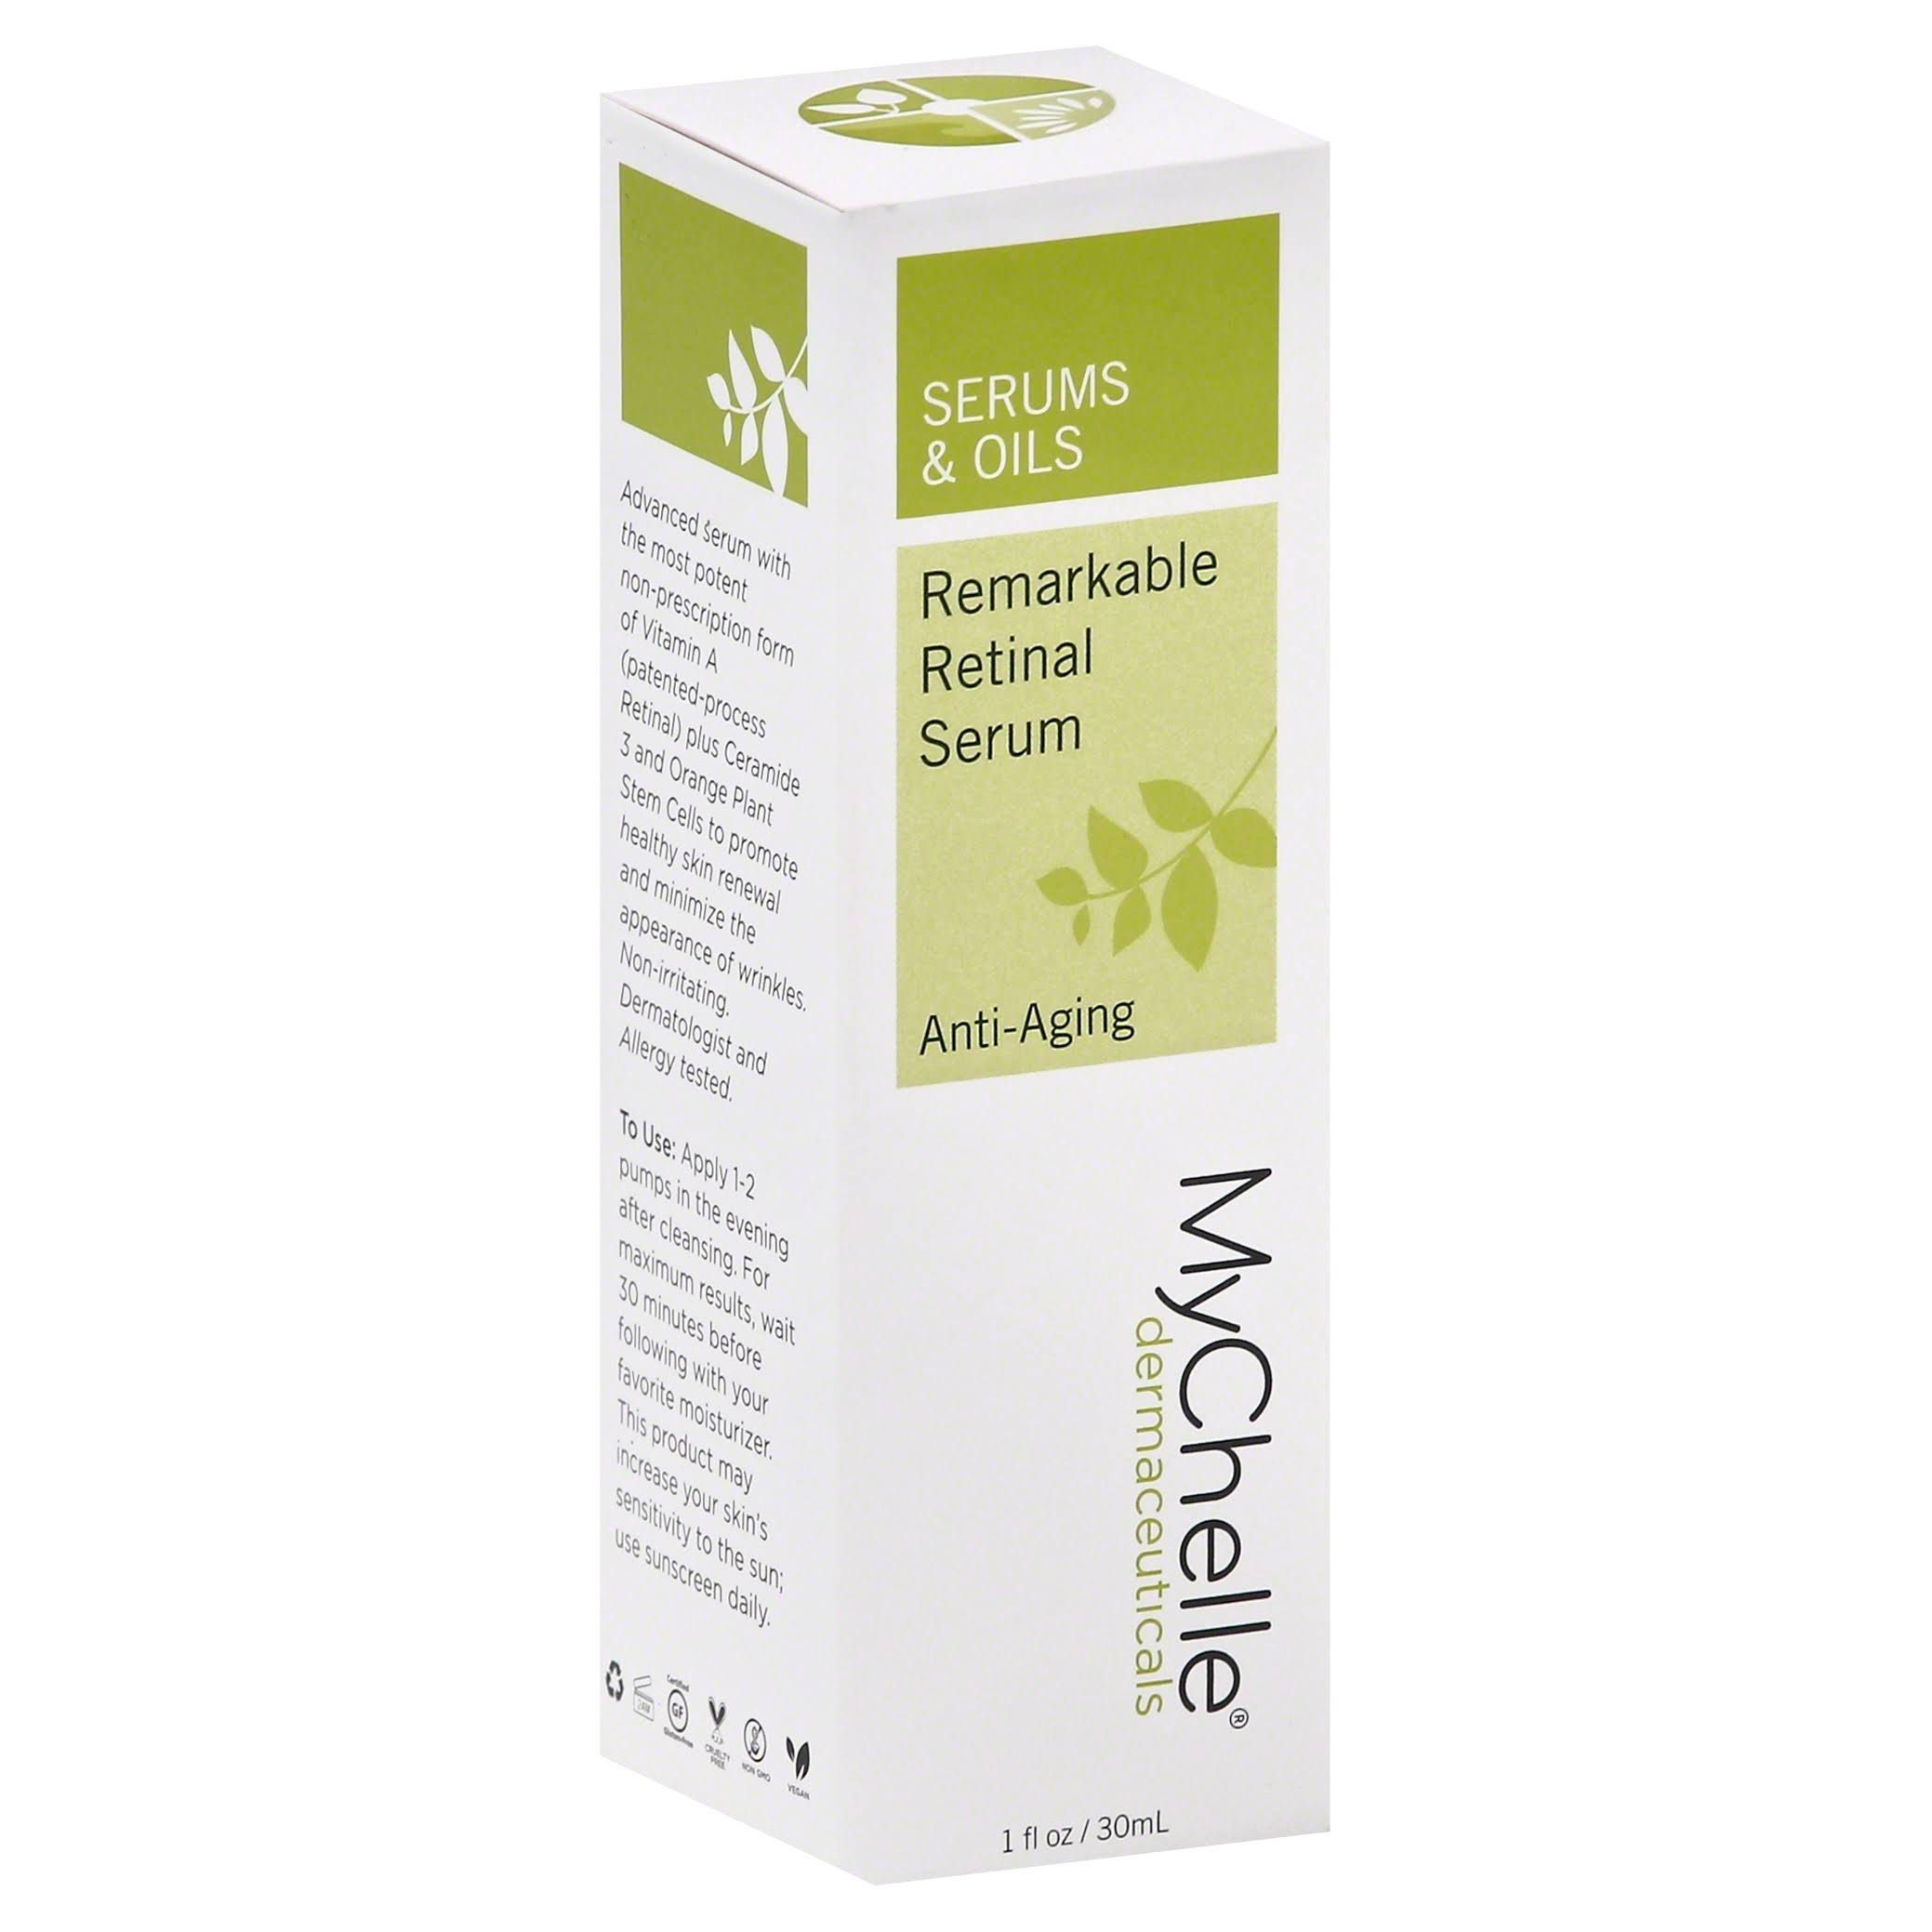 MyChelle Dermaceuticals Remarkable Retinal Serum - 30ml